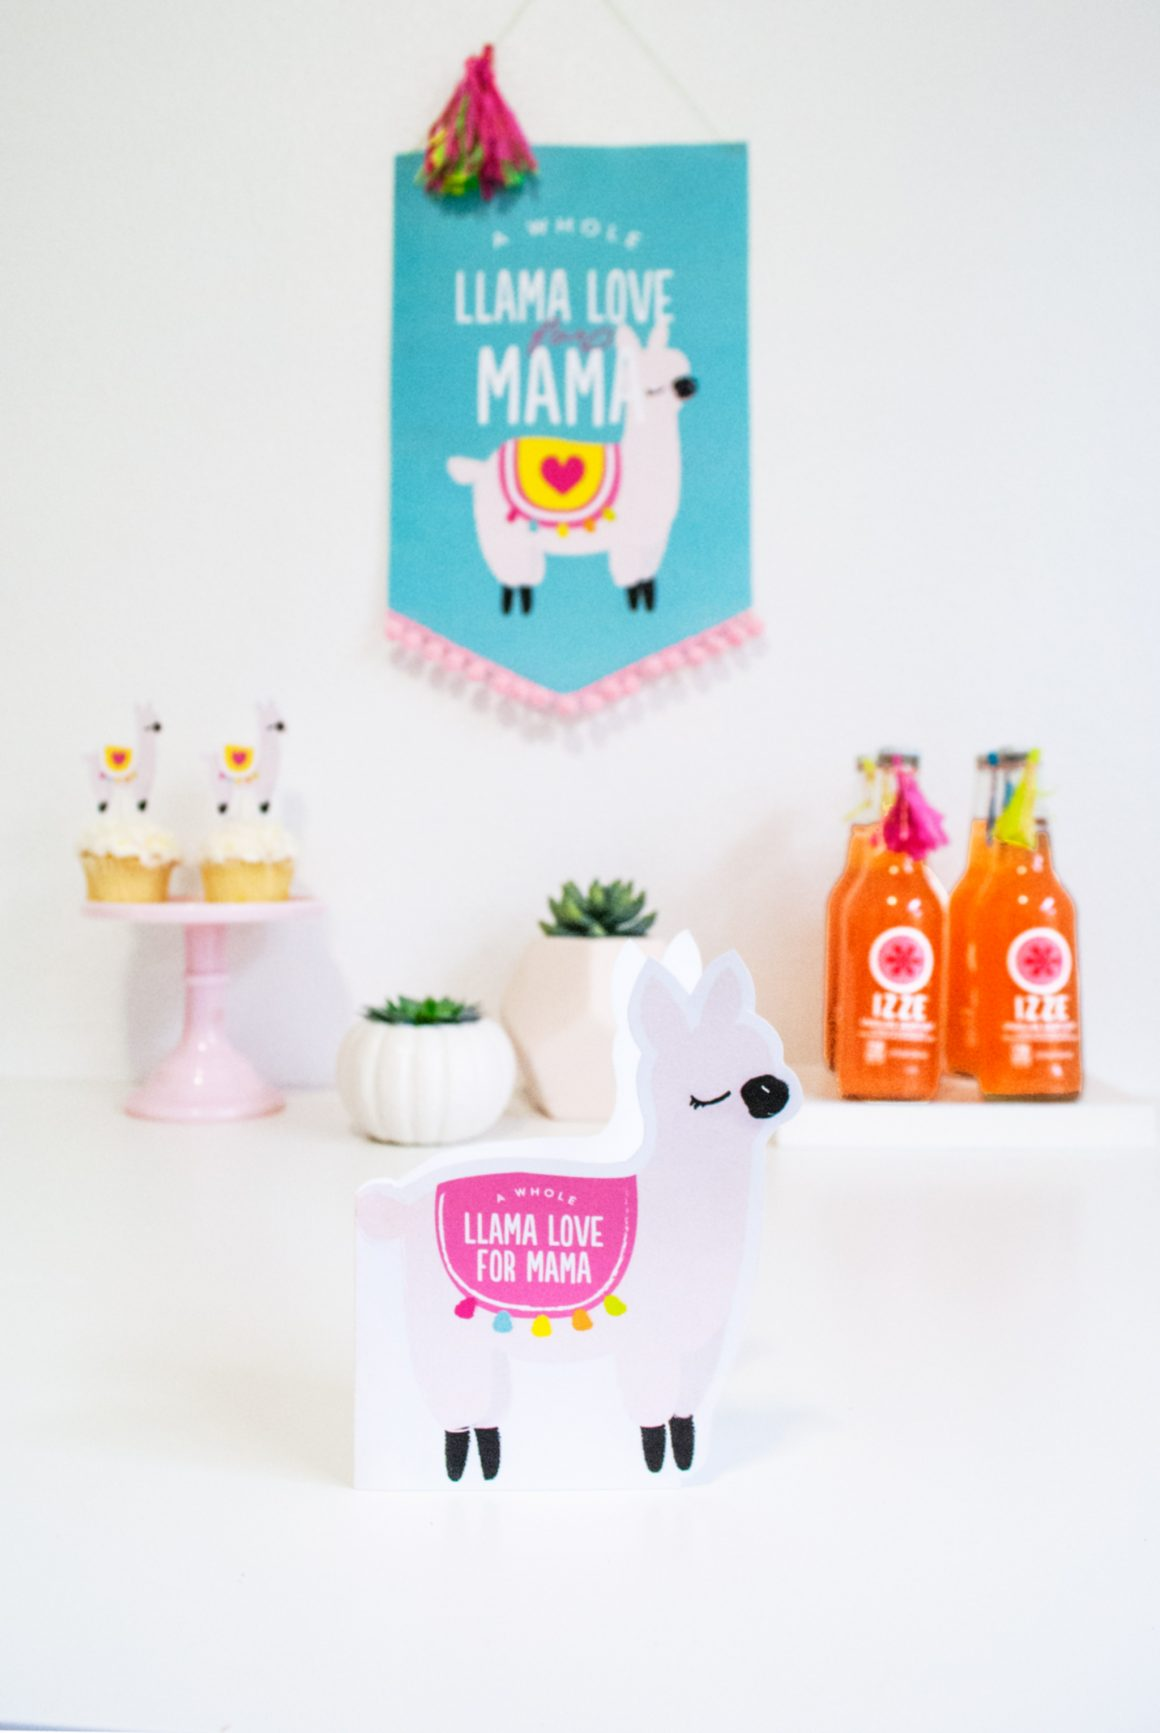 50+ Lovely Llama Crafts, Printables, SVG's DIY's, Food and Gift Ideas: Llama Love for Mama Mother's Day Card from Project Nursery